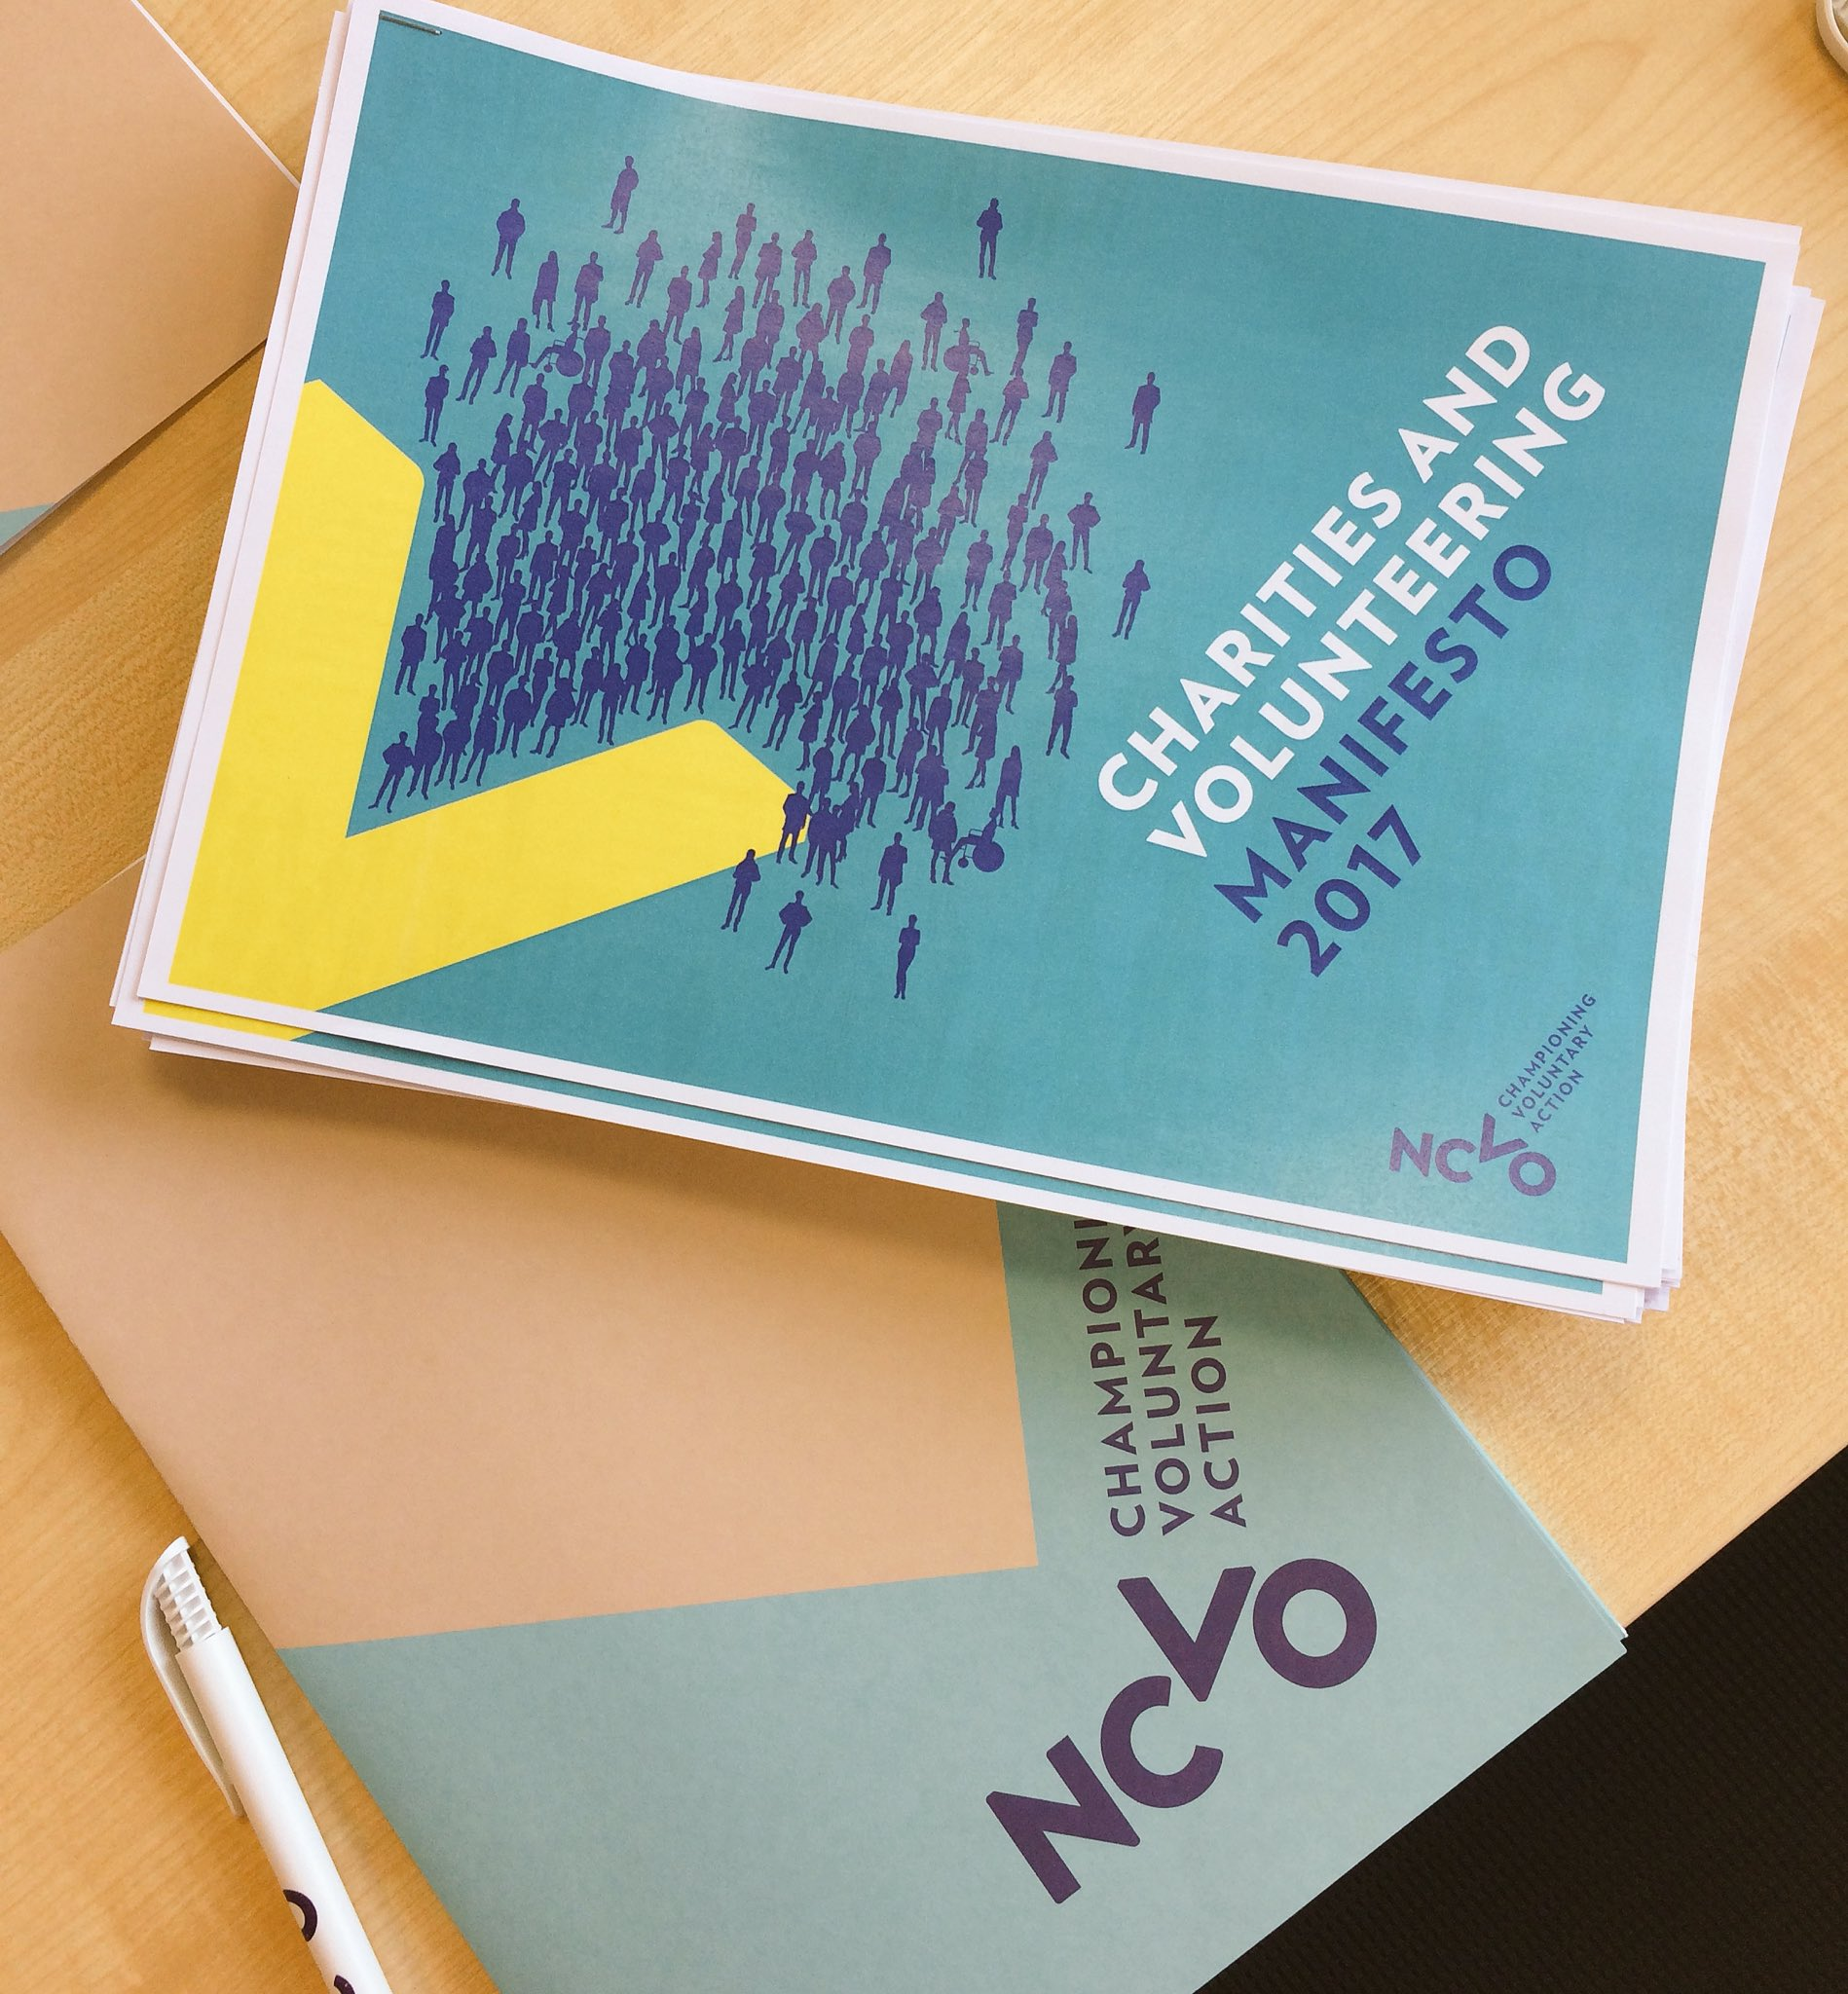 Getting set up for #volforum @ncvo today. Looking forward to seeing everyone :) follow @NCVOvolunteers #volforum https://t.co/sINV5oTUan